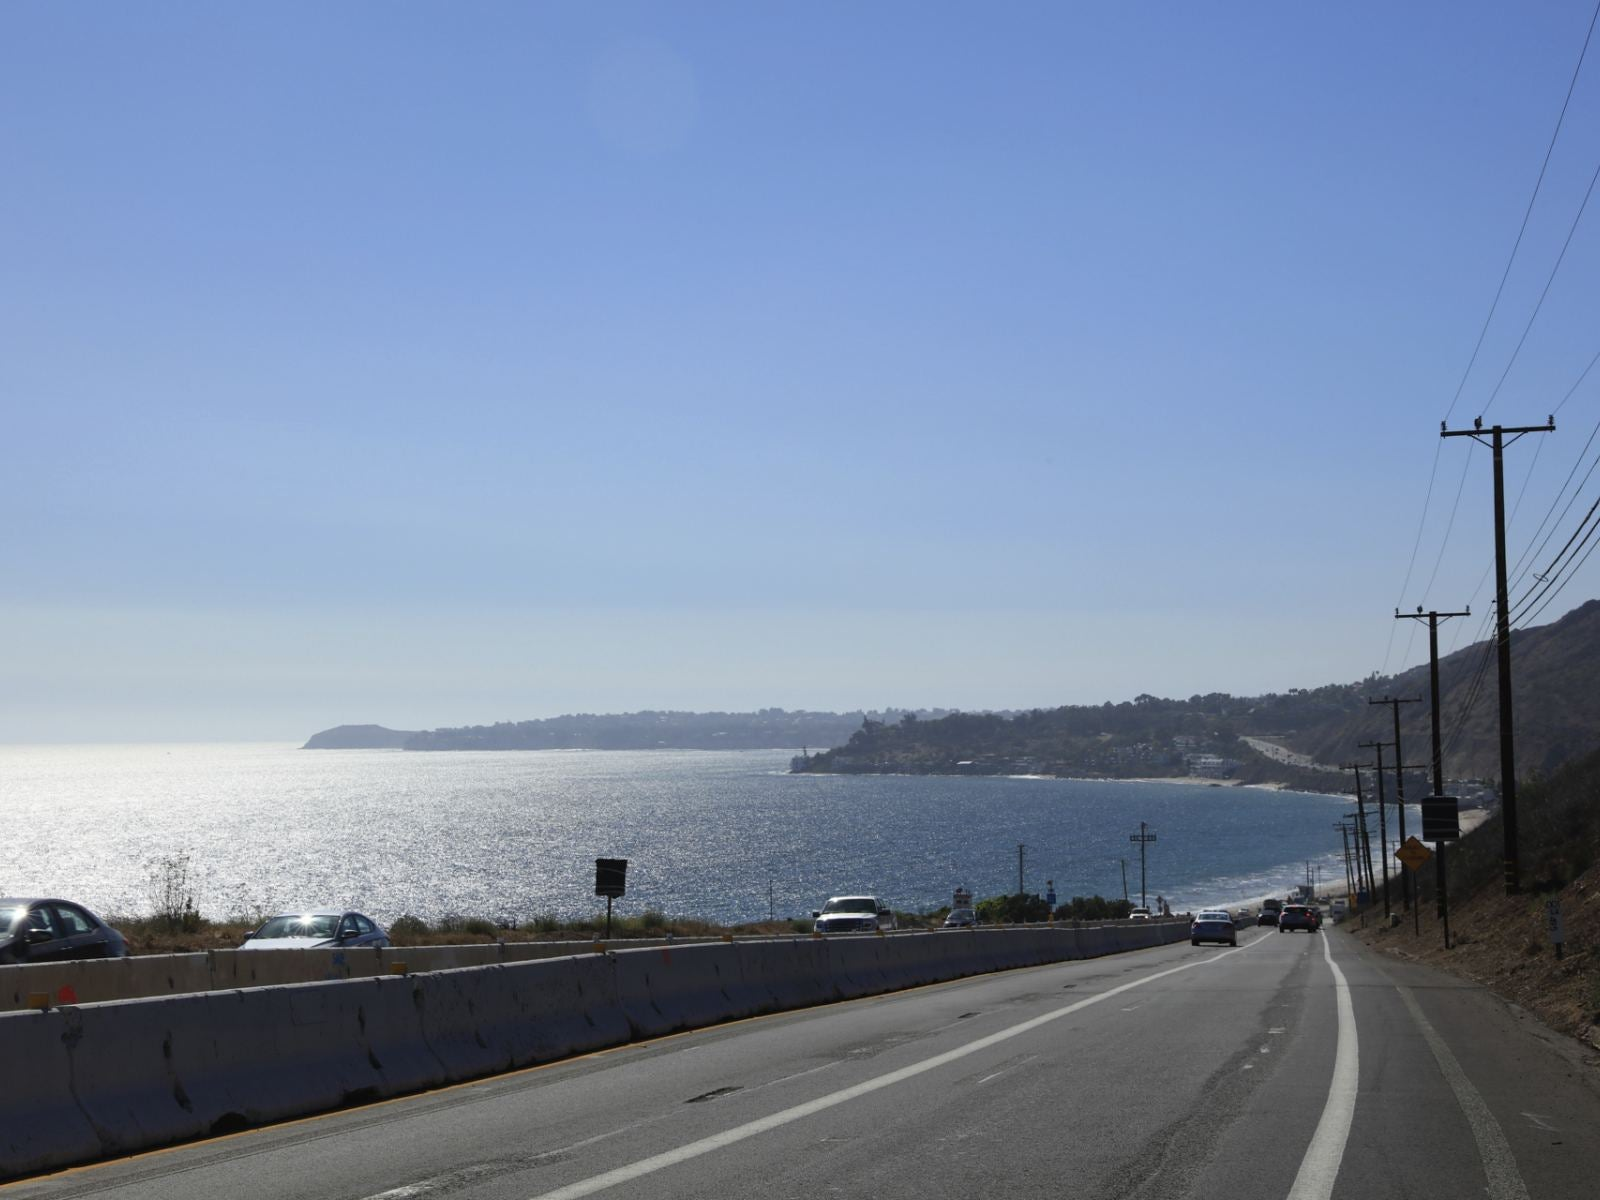 Scenic Drives in Los Angeles: the Coast | Discover Los Angeles on pch malibu, pch southern california, pch ca, pch big sur, pch newport, pch orange county, pch san diego, pch topanga, pch ventura county, pch laguna beach, pch los angeles, pch pacific coast, pch san francisco,